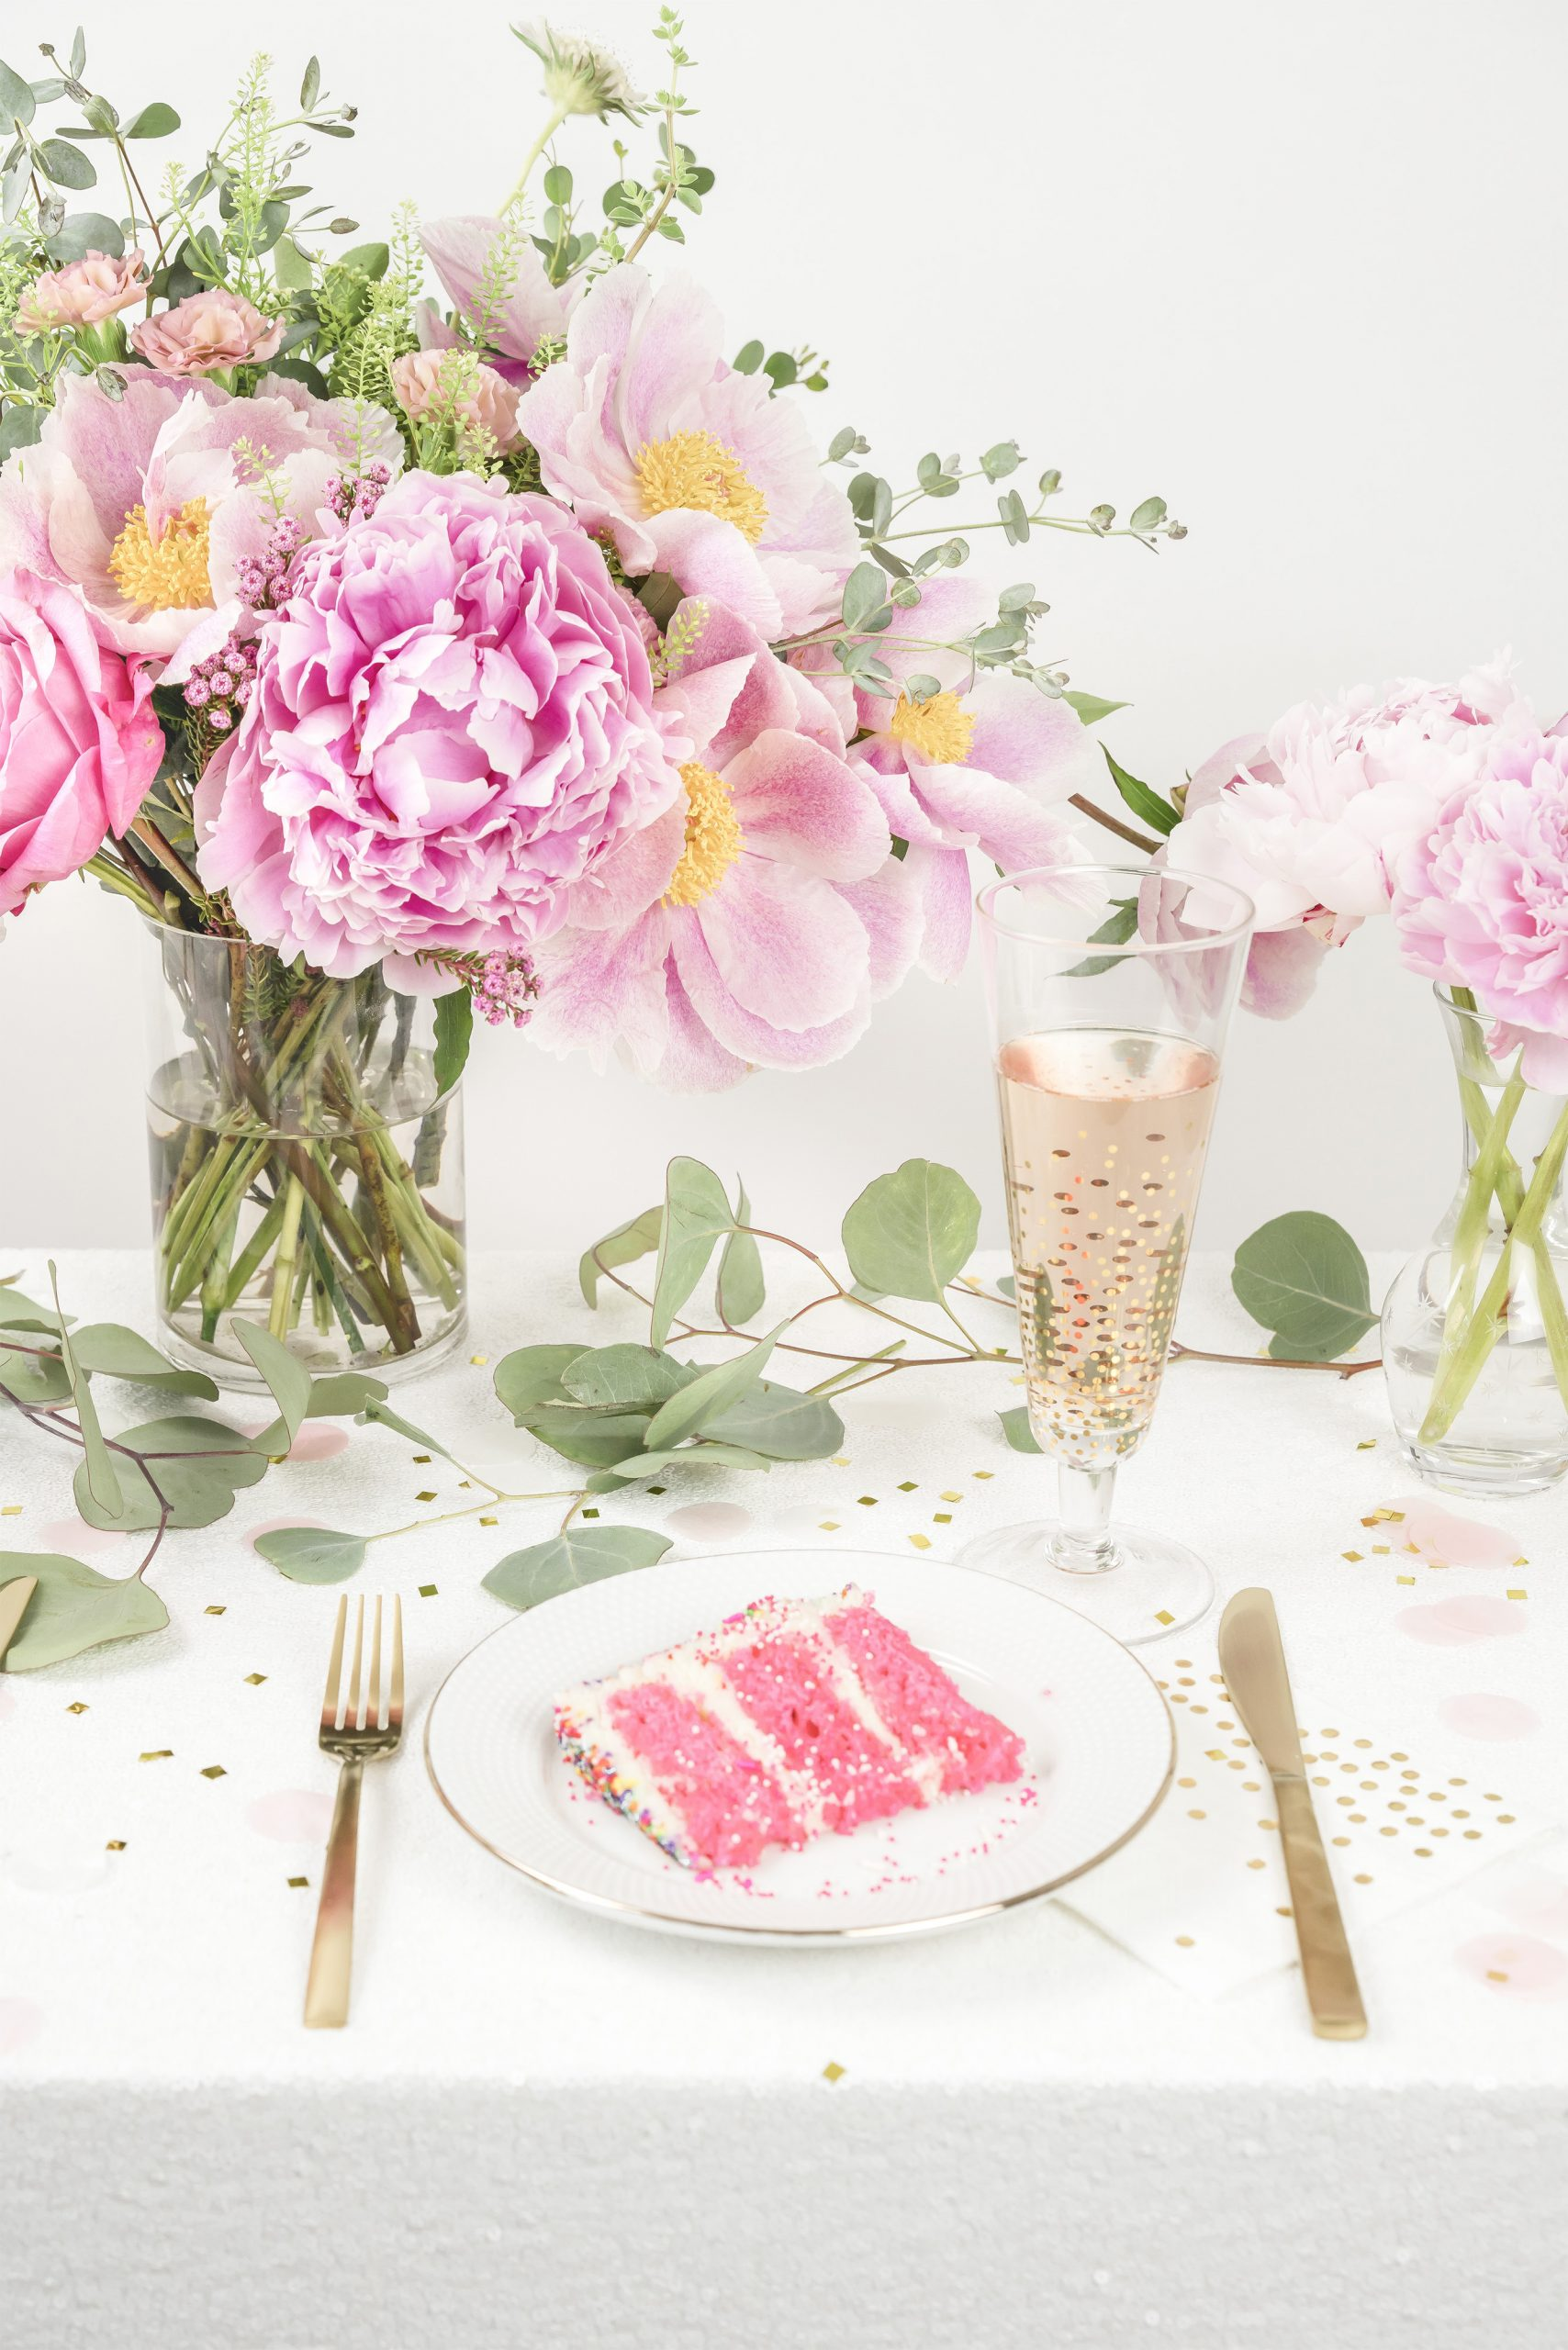 How To Treat Yourself In 62 Different Ways ft. Lily Blanche